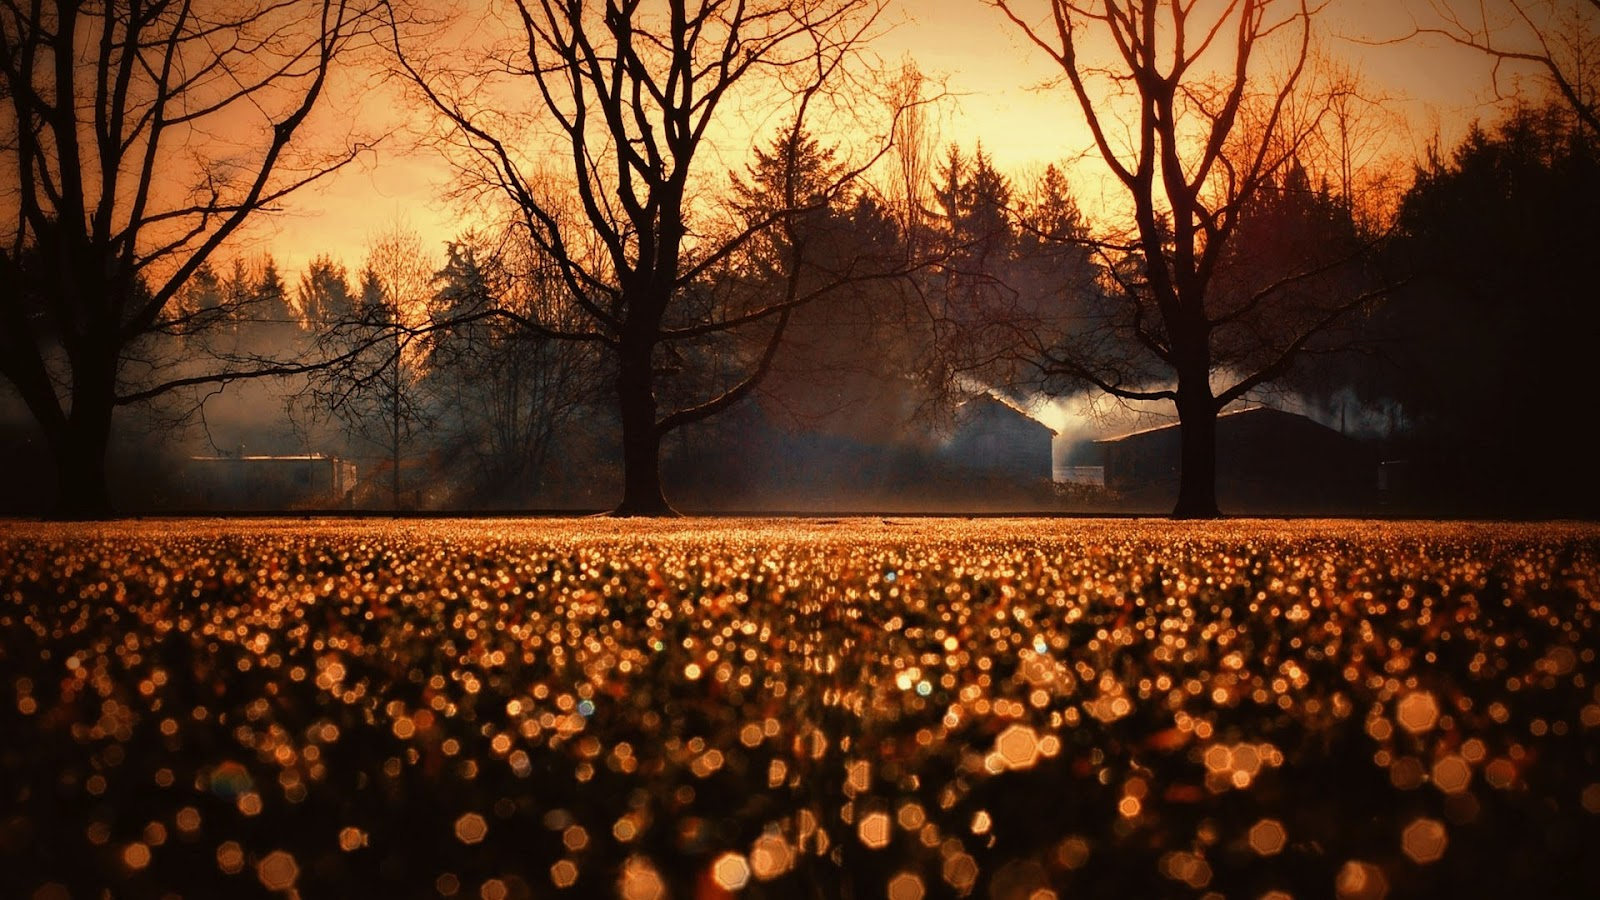 Wonderful Wallpaper Halloween Landscape - Yellow-Sunset-Dry-Trees-Hexegon-Bokeh-Lights-Awesome-Photography-HD-Wallpaper--NatureWallBase  Picture_32121.jpg